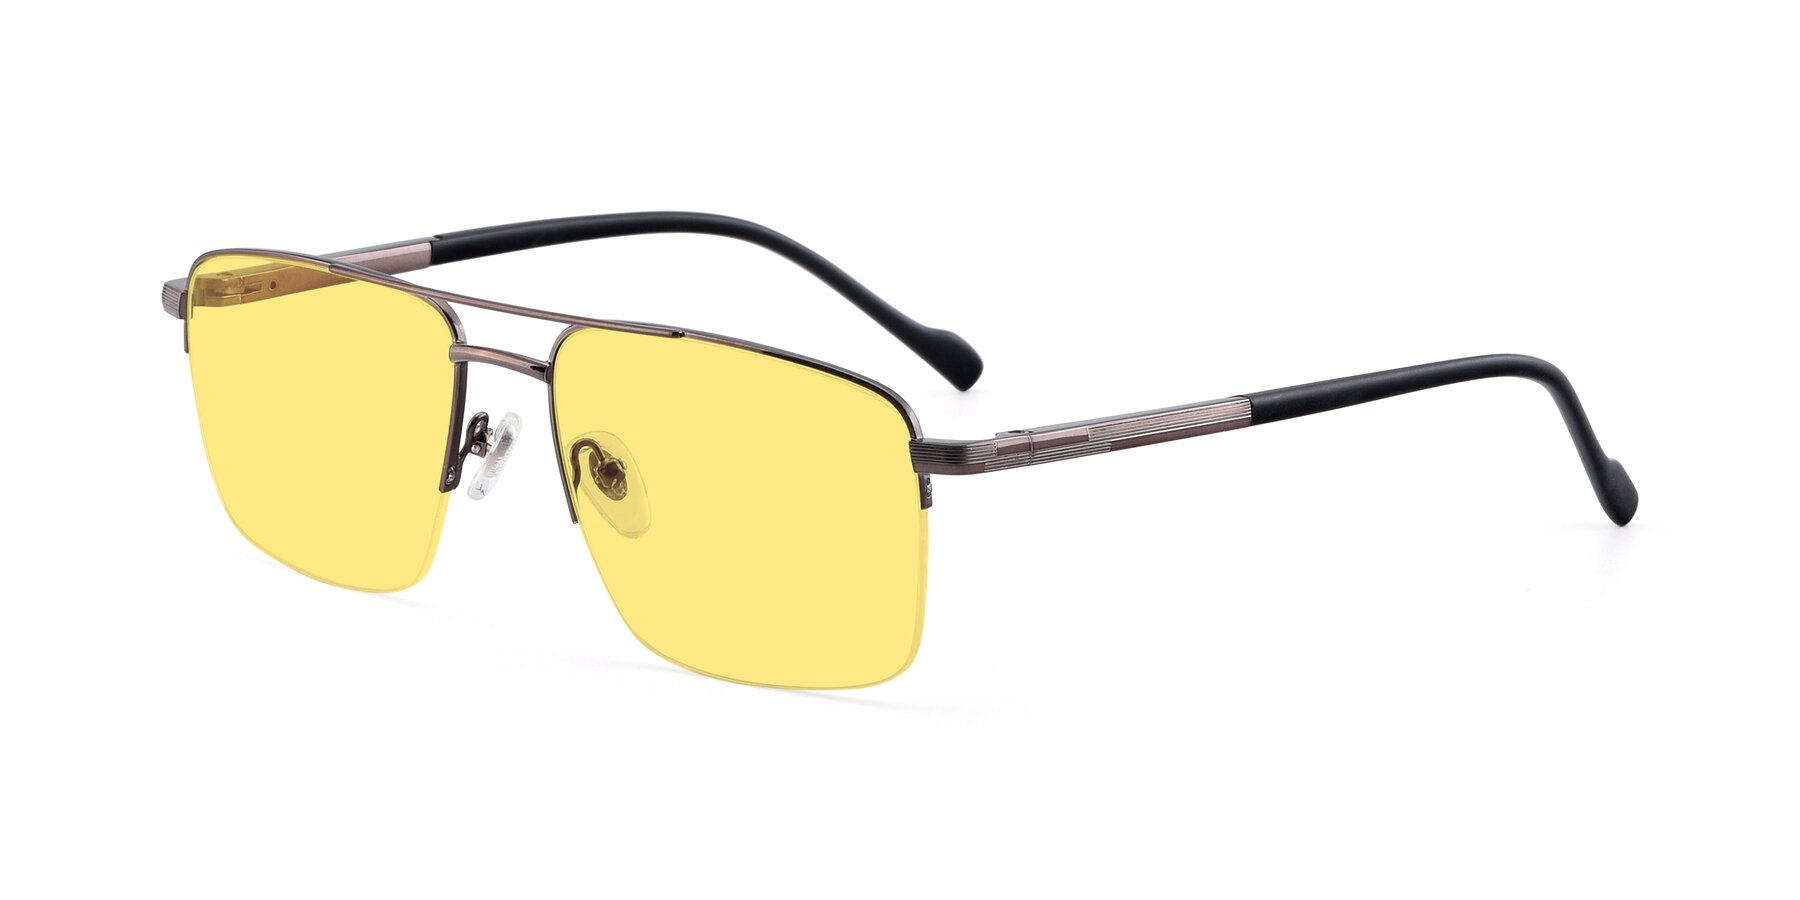 Angle of 19013 in Gunmetal with Medium Yellow Tinted Lenses